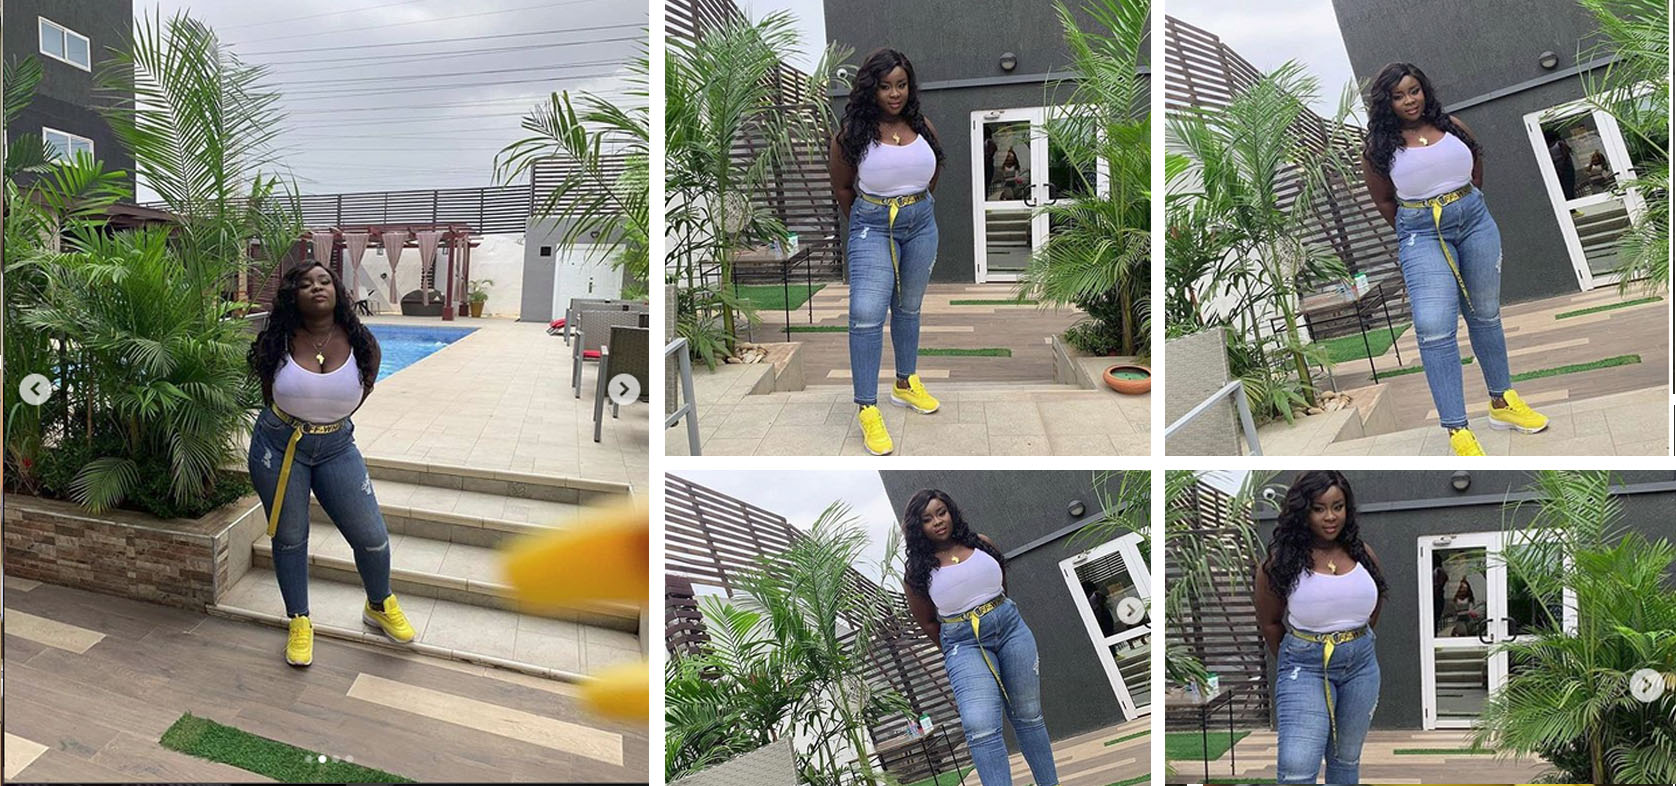 Maame Serwaa Under Heavy Fire For Her Looks And Fashion Sense in New Photo